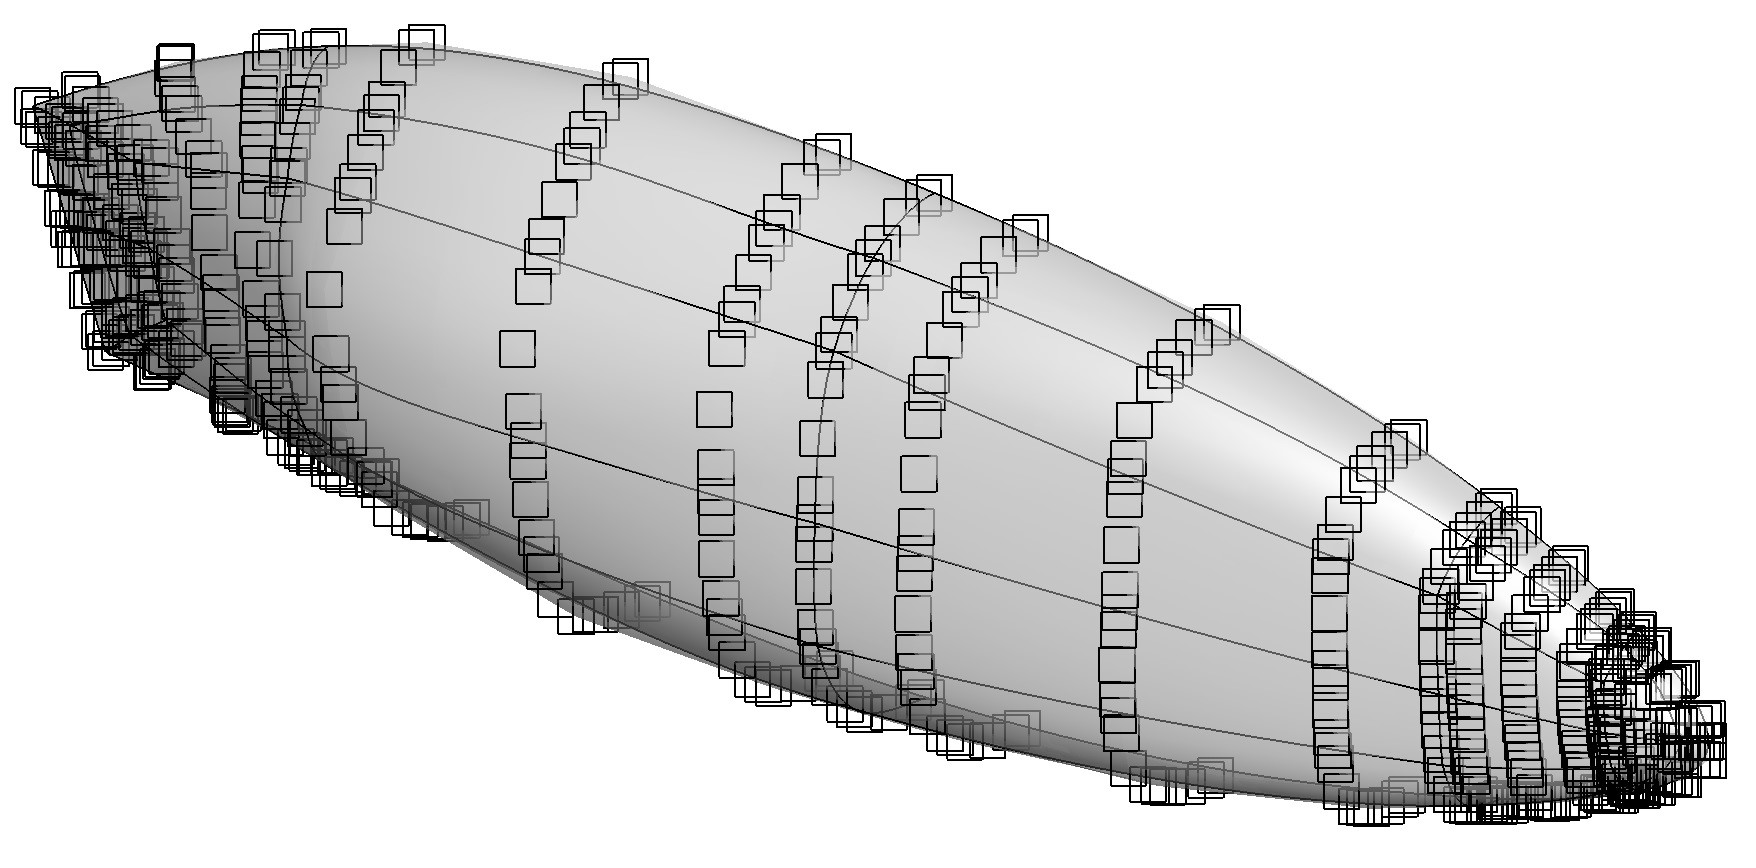 Control point distribution over Eta used for the optimizations. Use of the adjoint method allows the shape to be parametrized by many control points for optimization.